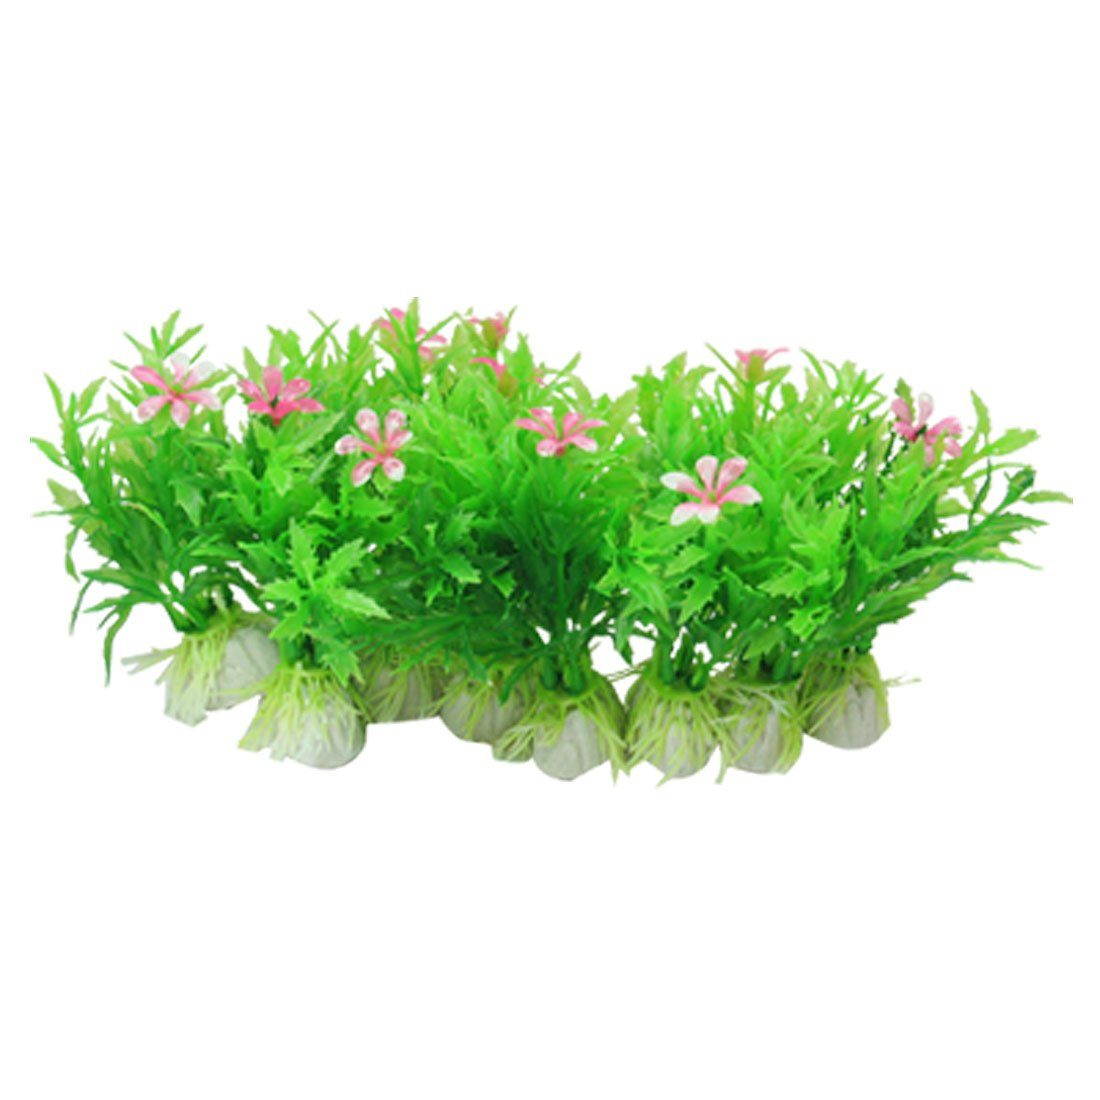 Beautiful Aquarium Plastic Plants with Flower for Fish Tank